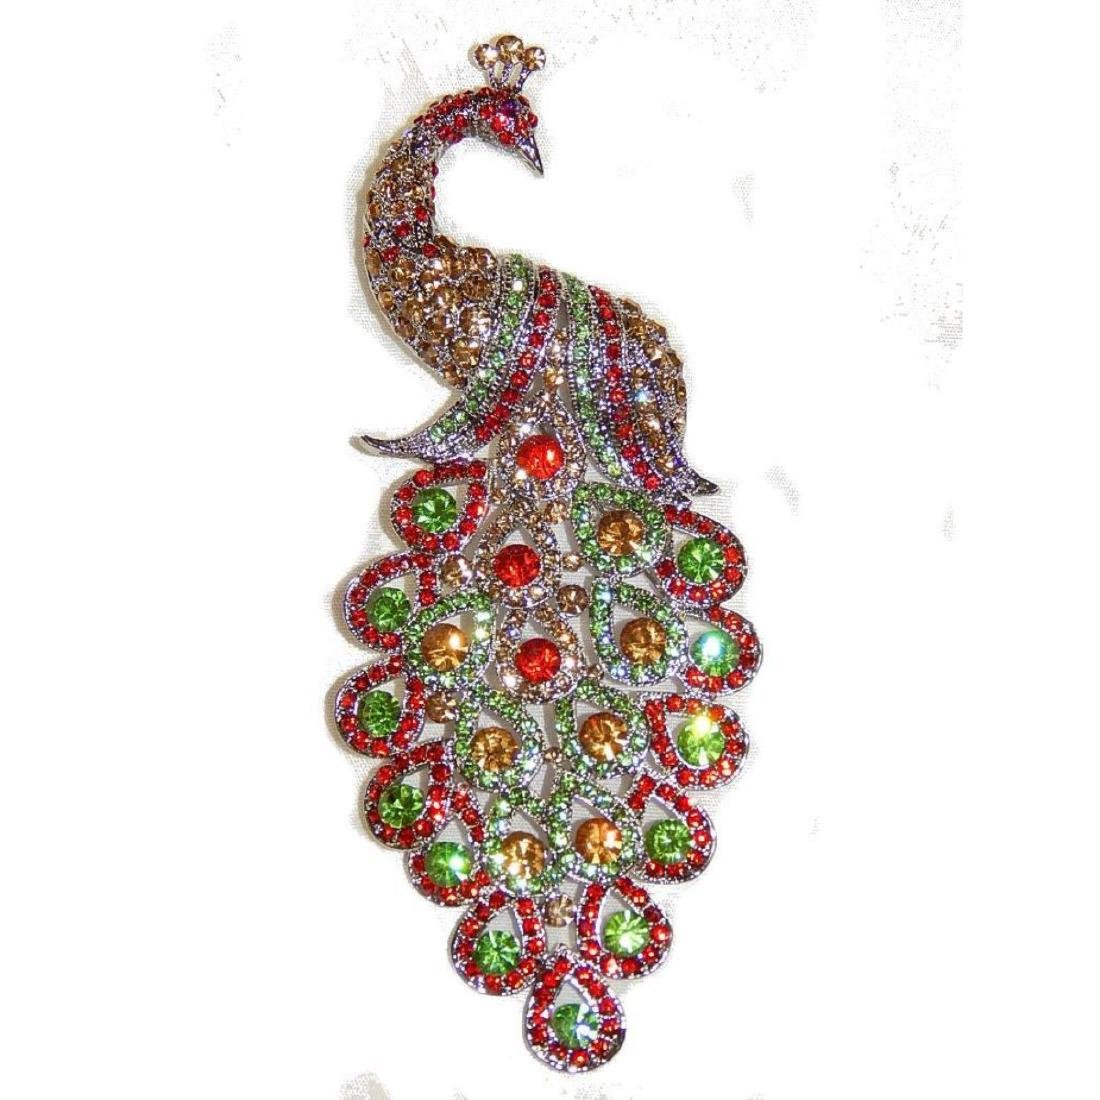 "5.3"" Peacock Multicolor Rhinestone Crystal Brooch /pin - 6"